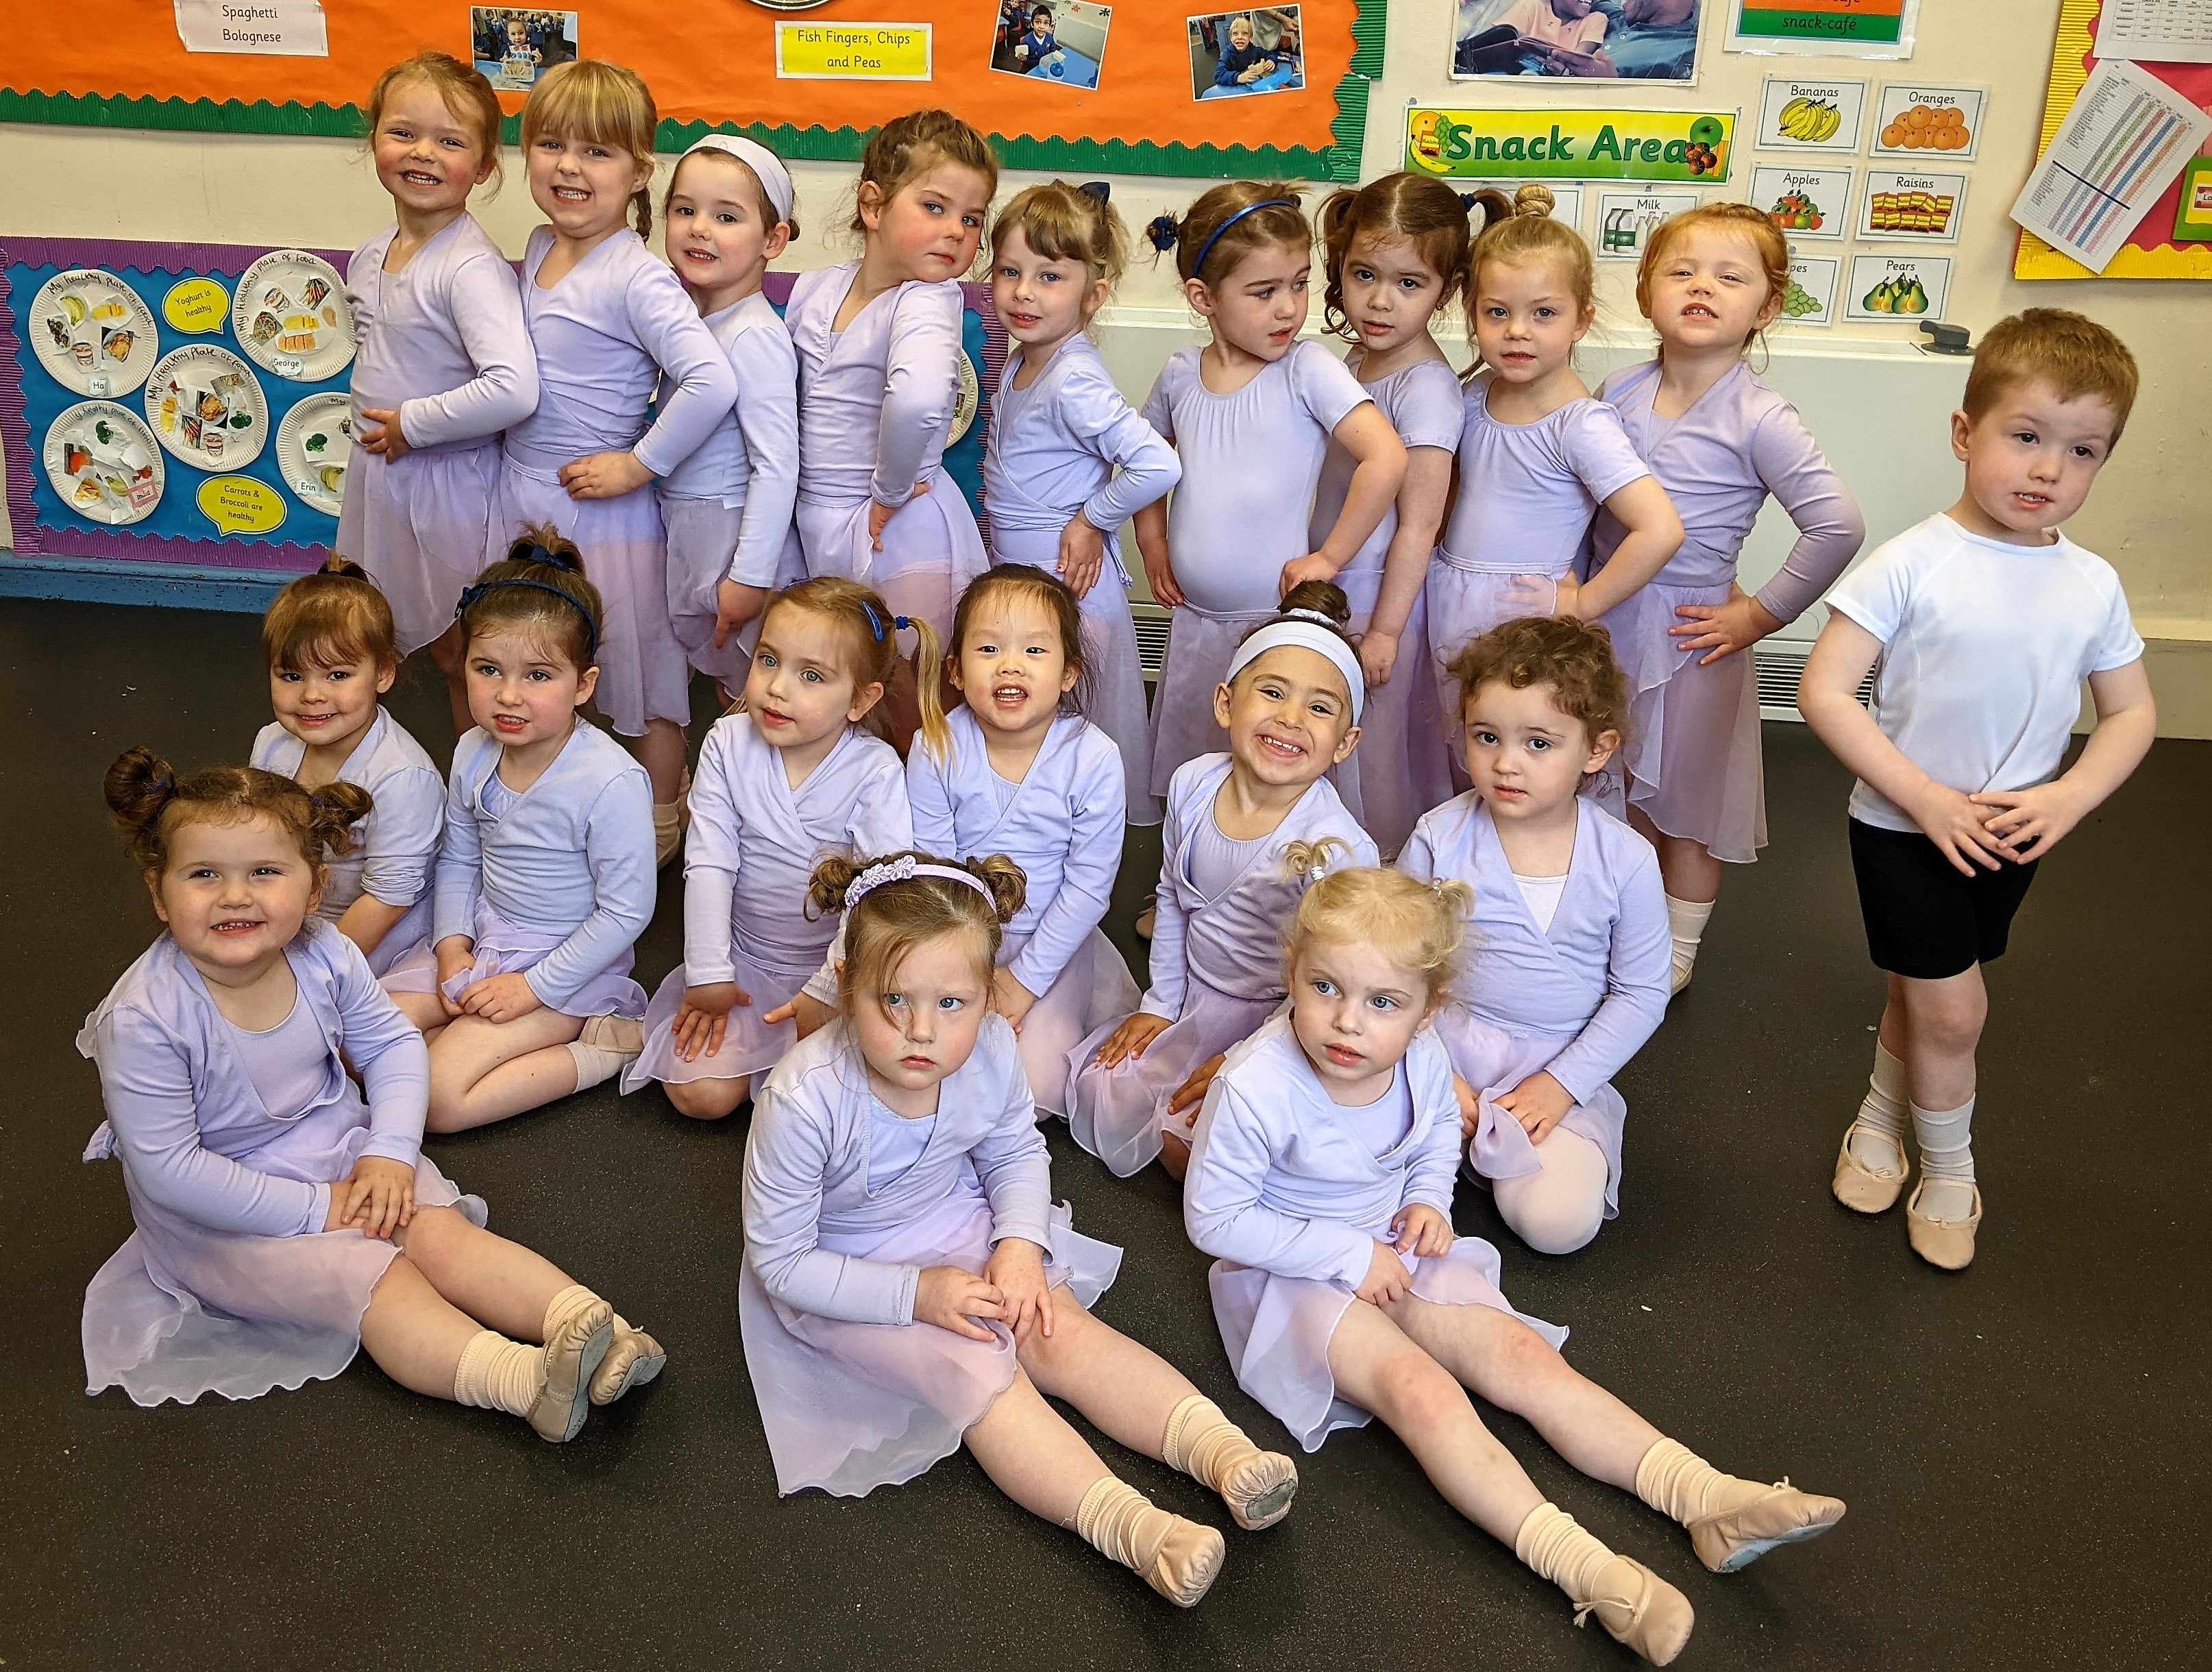 Kidderminster's Little Trinity Nursery Enjoying Some Ballet Fun!